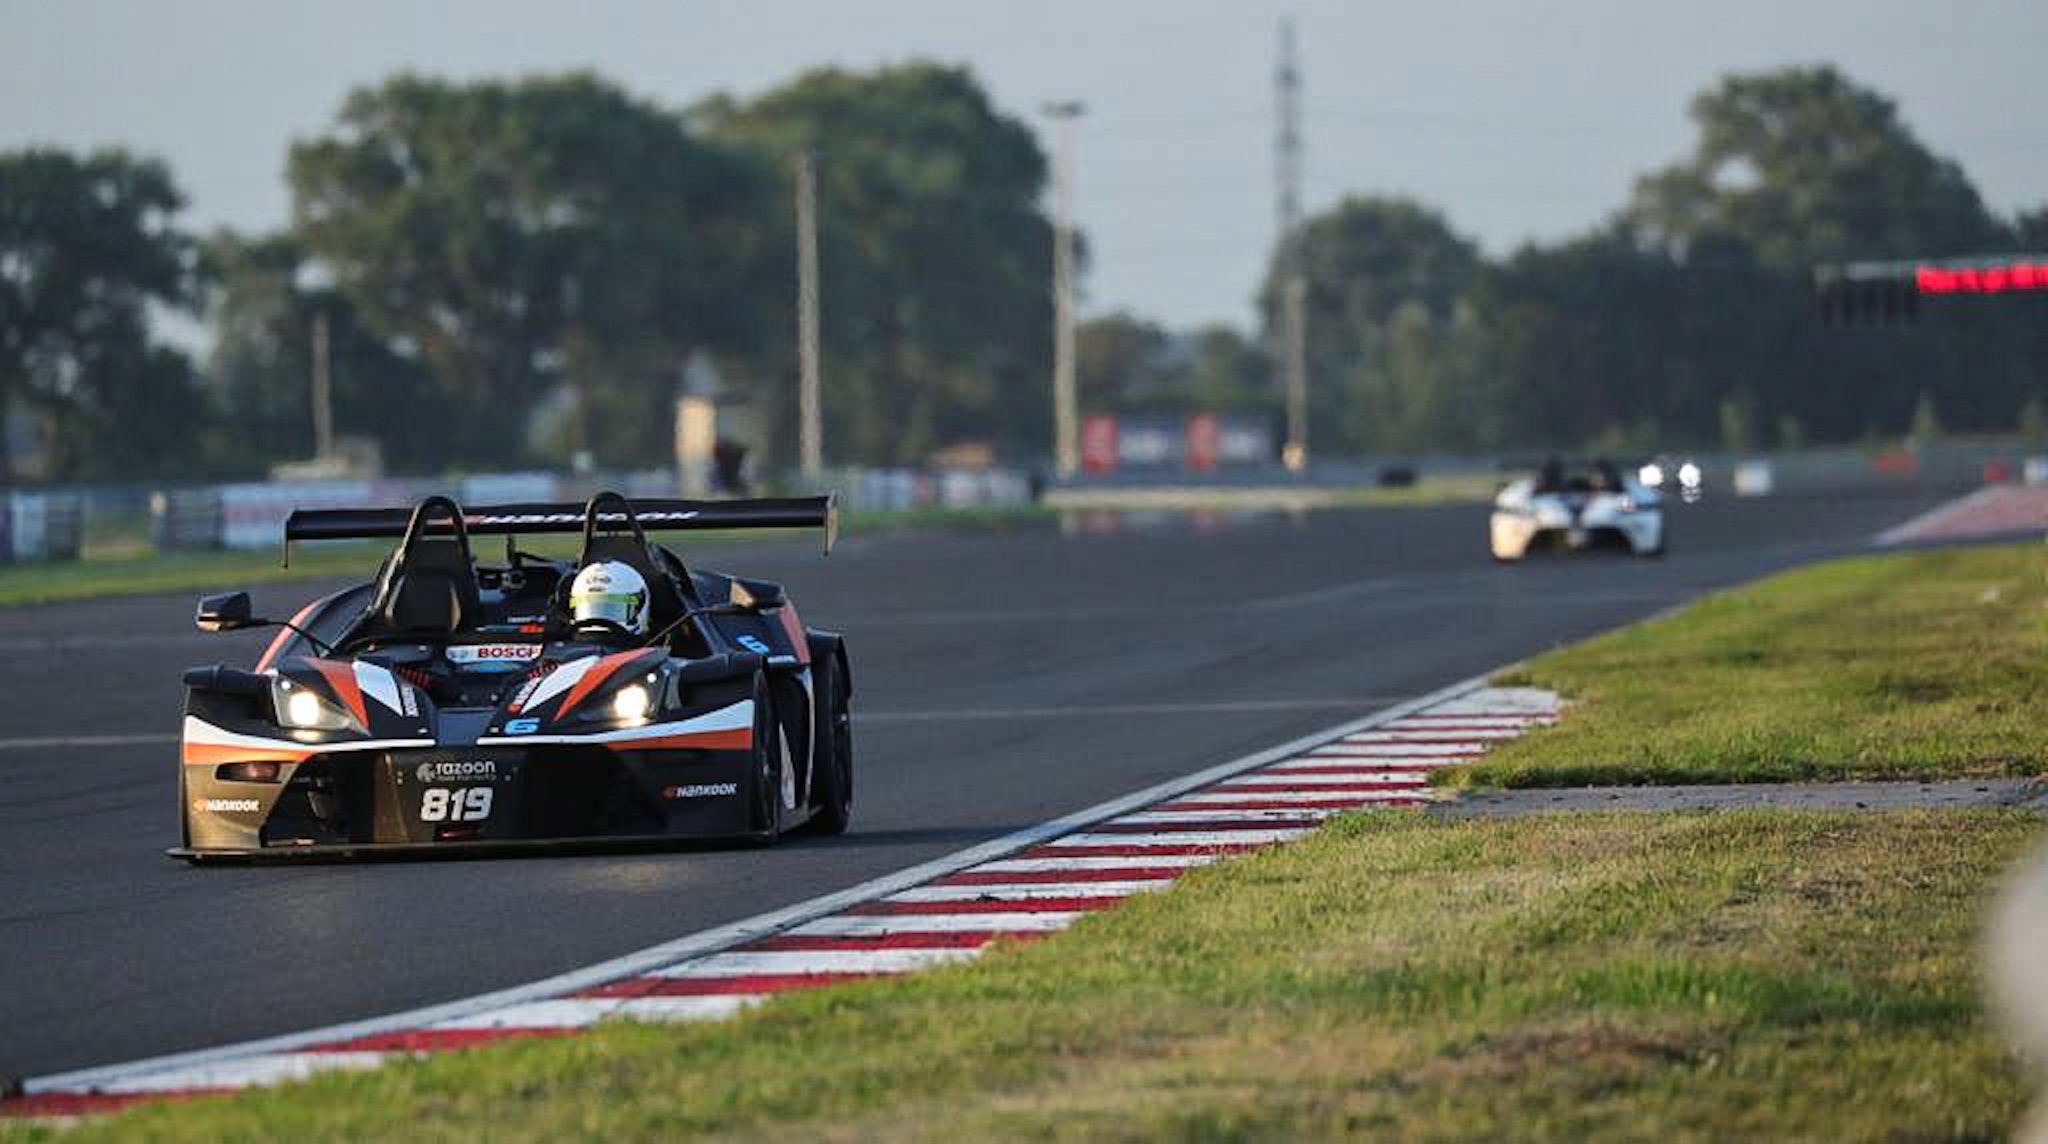 Hankook-shod Team Razoon KTM X-Bow R competes at Slovakiaring in Histo Cup